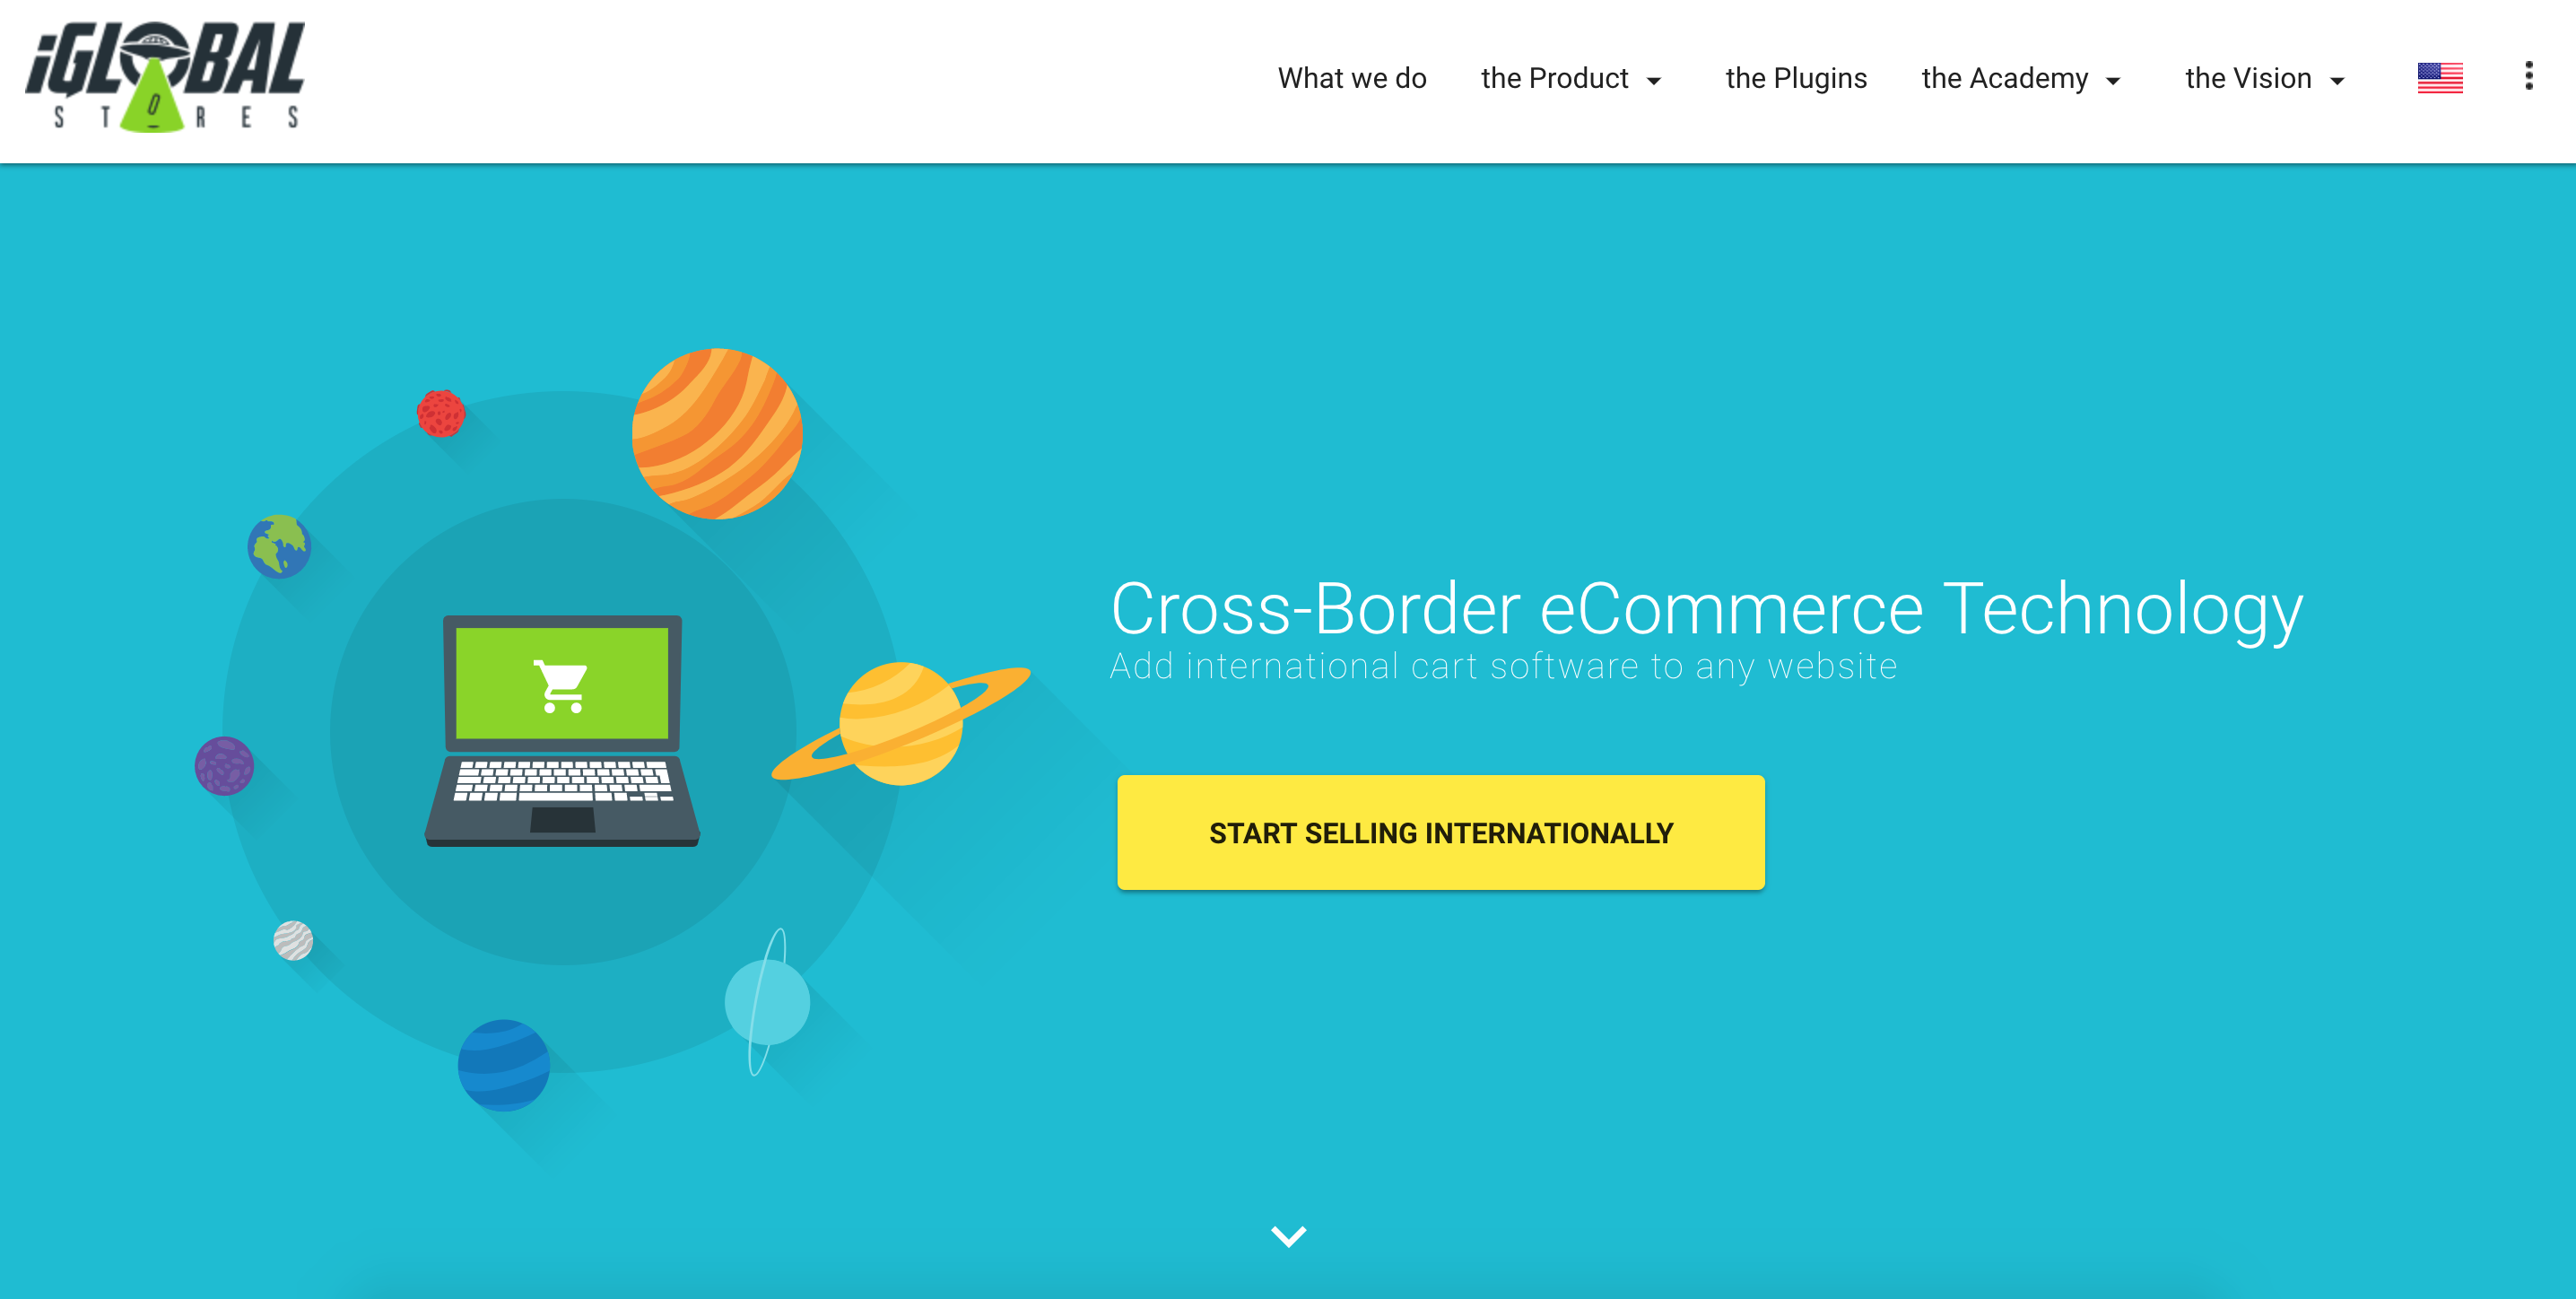 iGlobal Stores offers cross-border ecommerce technology